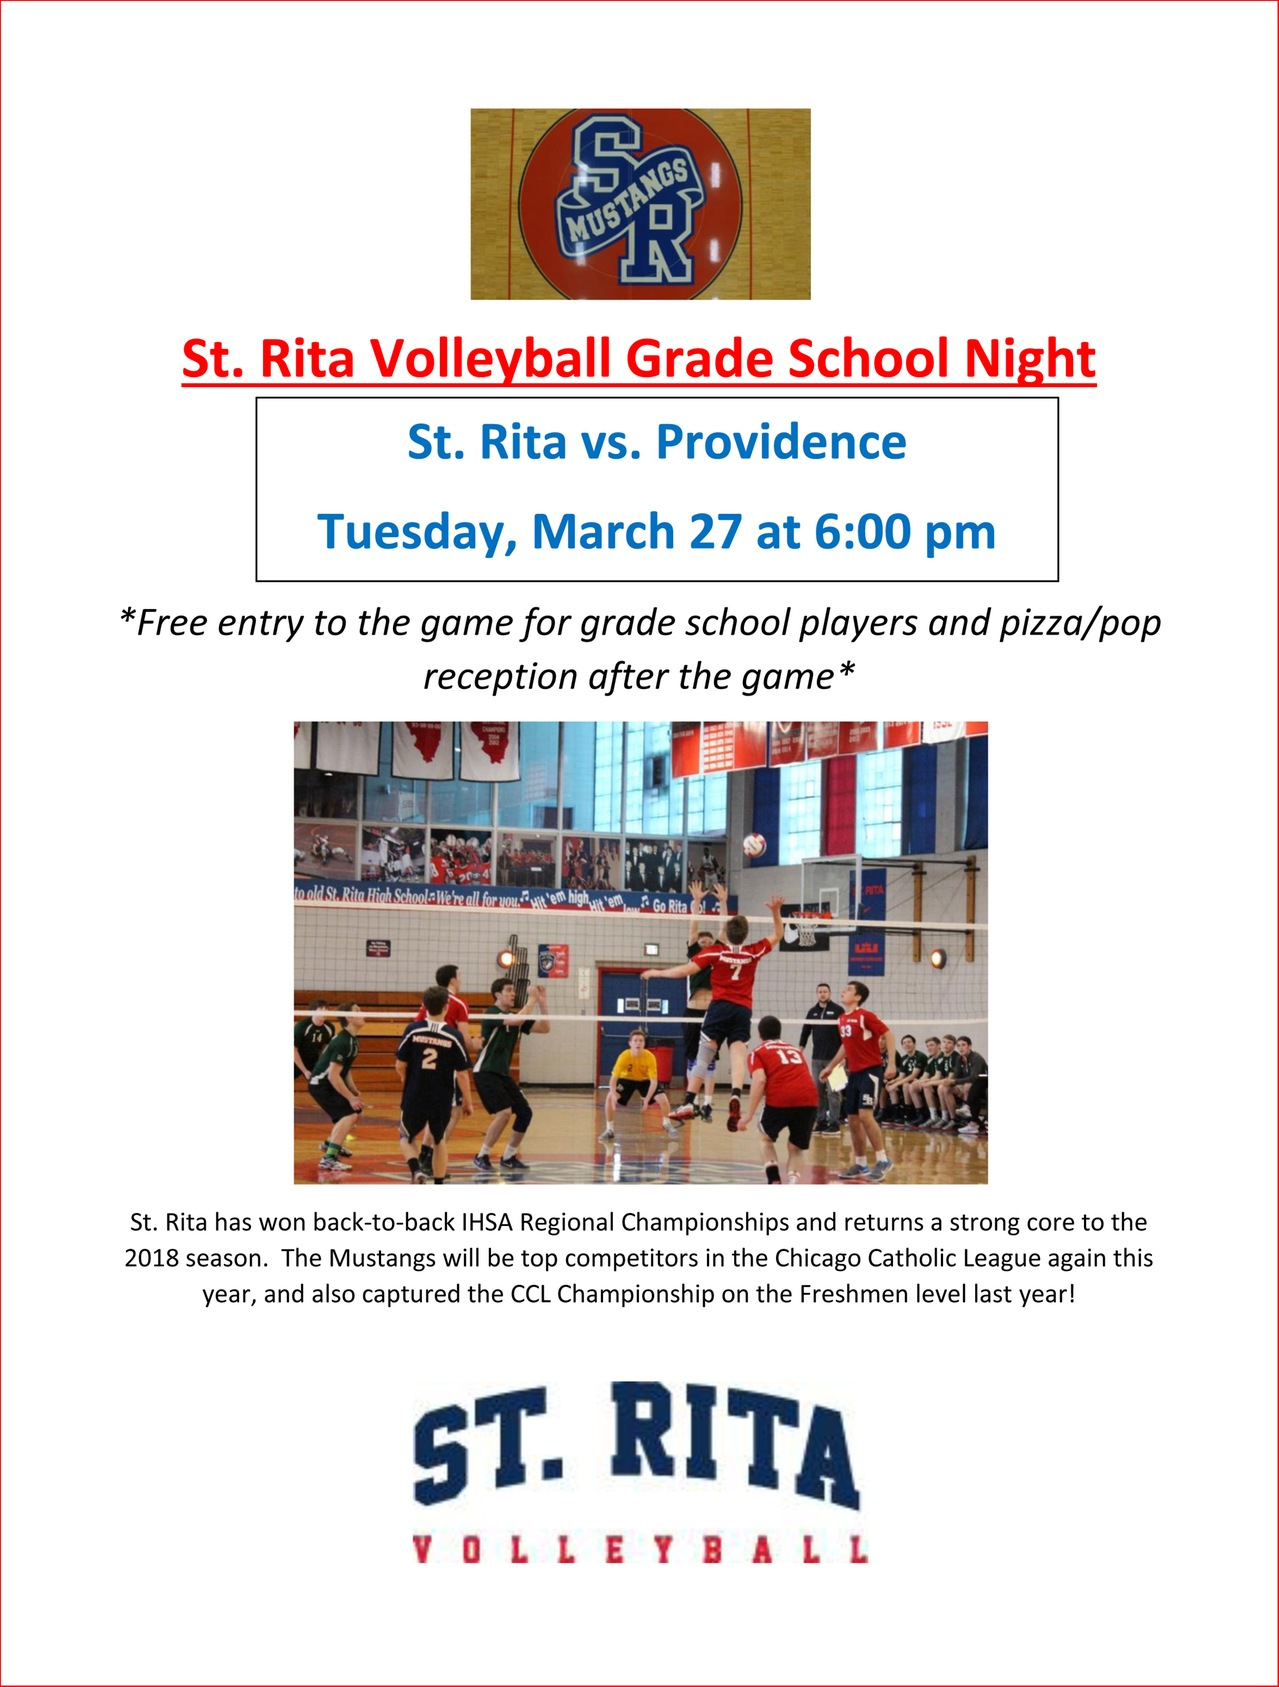 St. Rita Volleyball Grade School Night